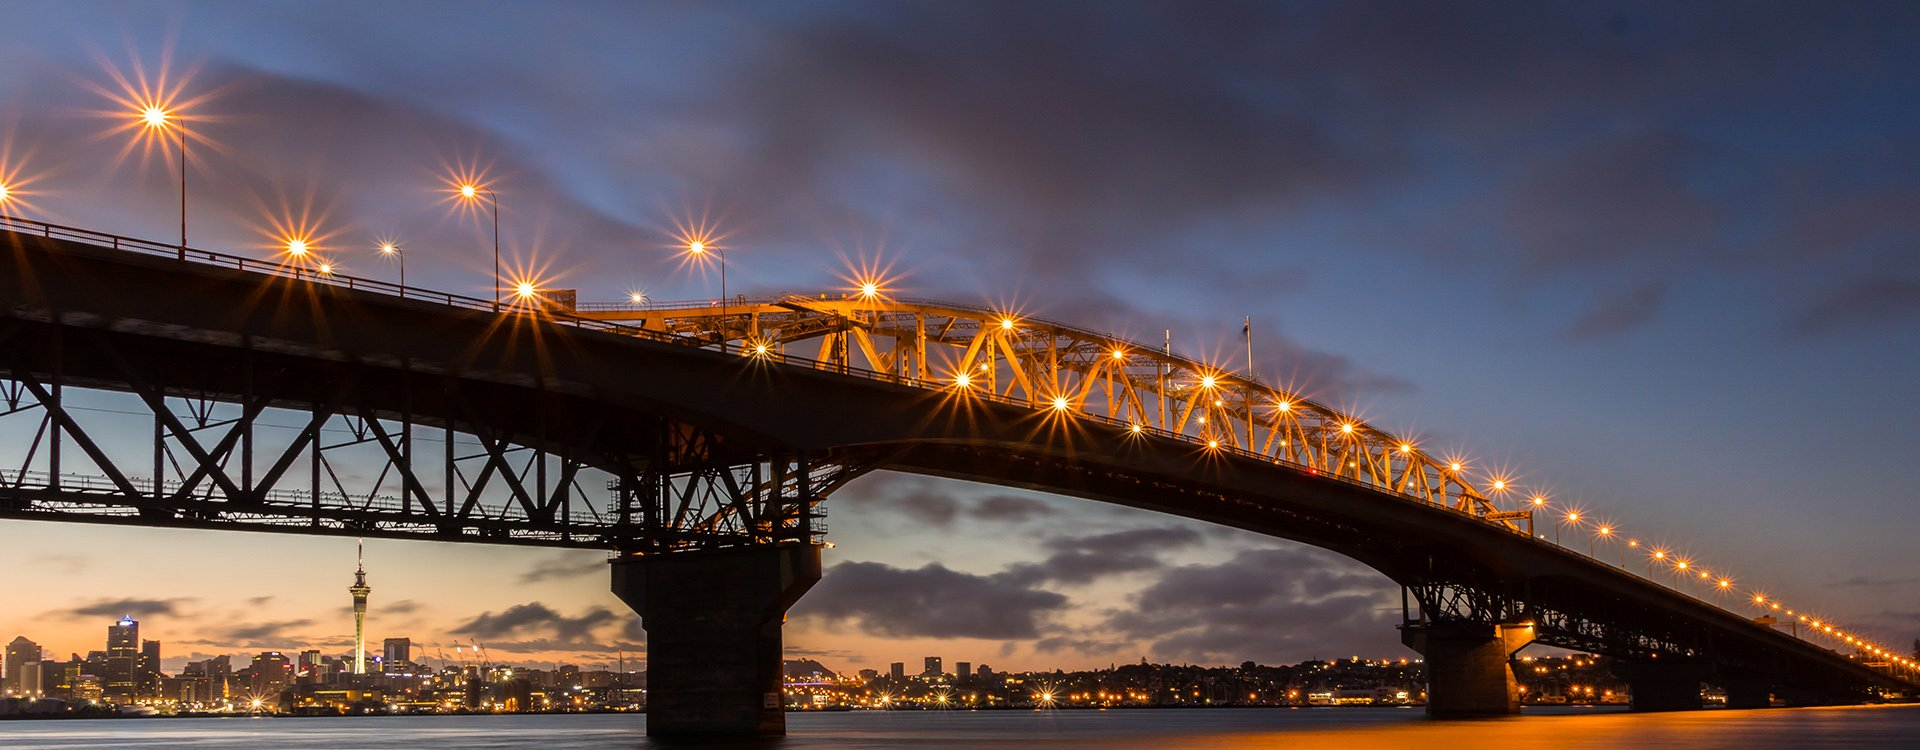 bnr-harbour-bridge-lighting